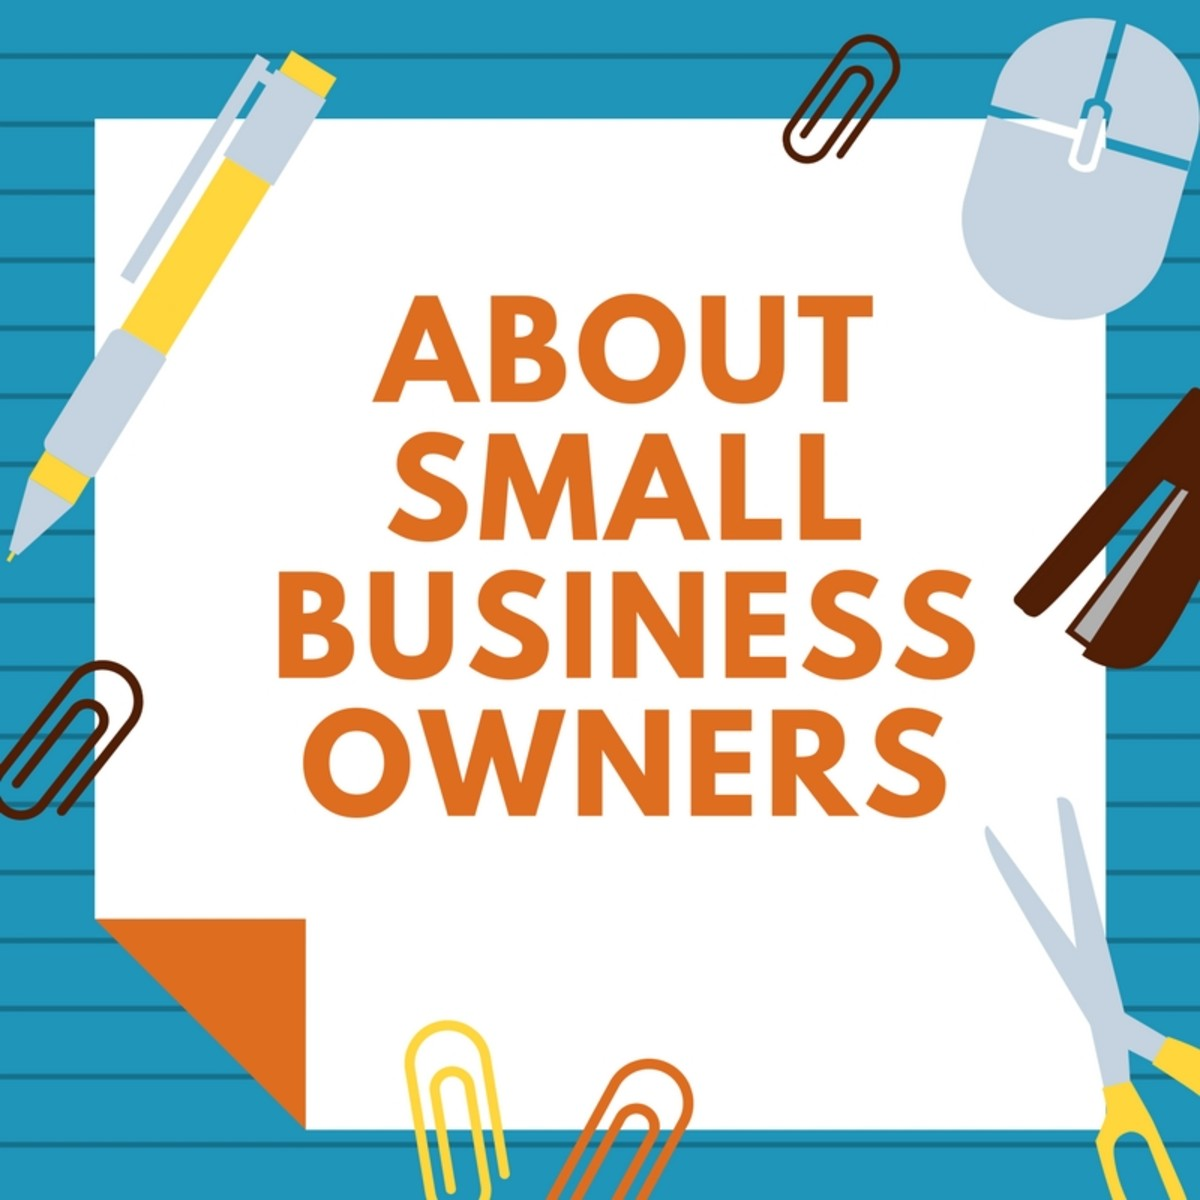 Knowing the differences between small businesses is important if you are looking to start your own or sell to them.